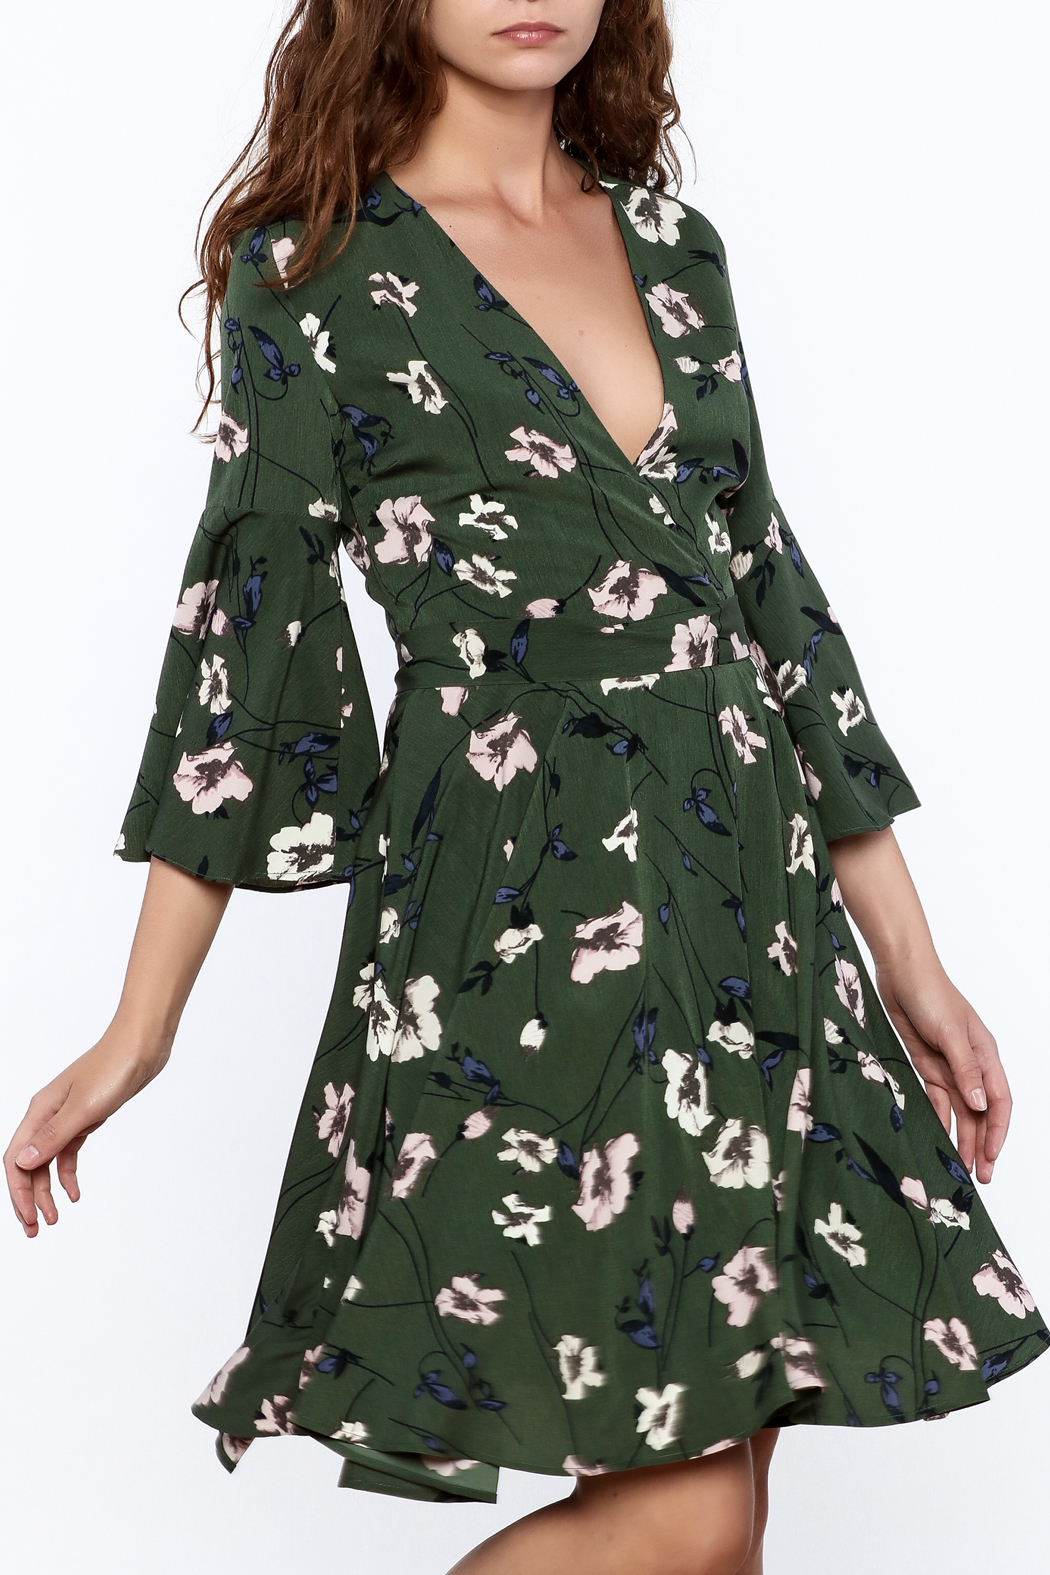 Akaiv Green Floral Dress From New Hampshire By Pretty